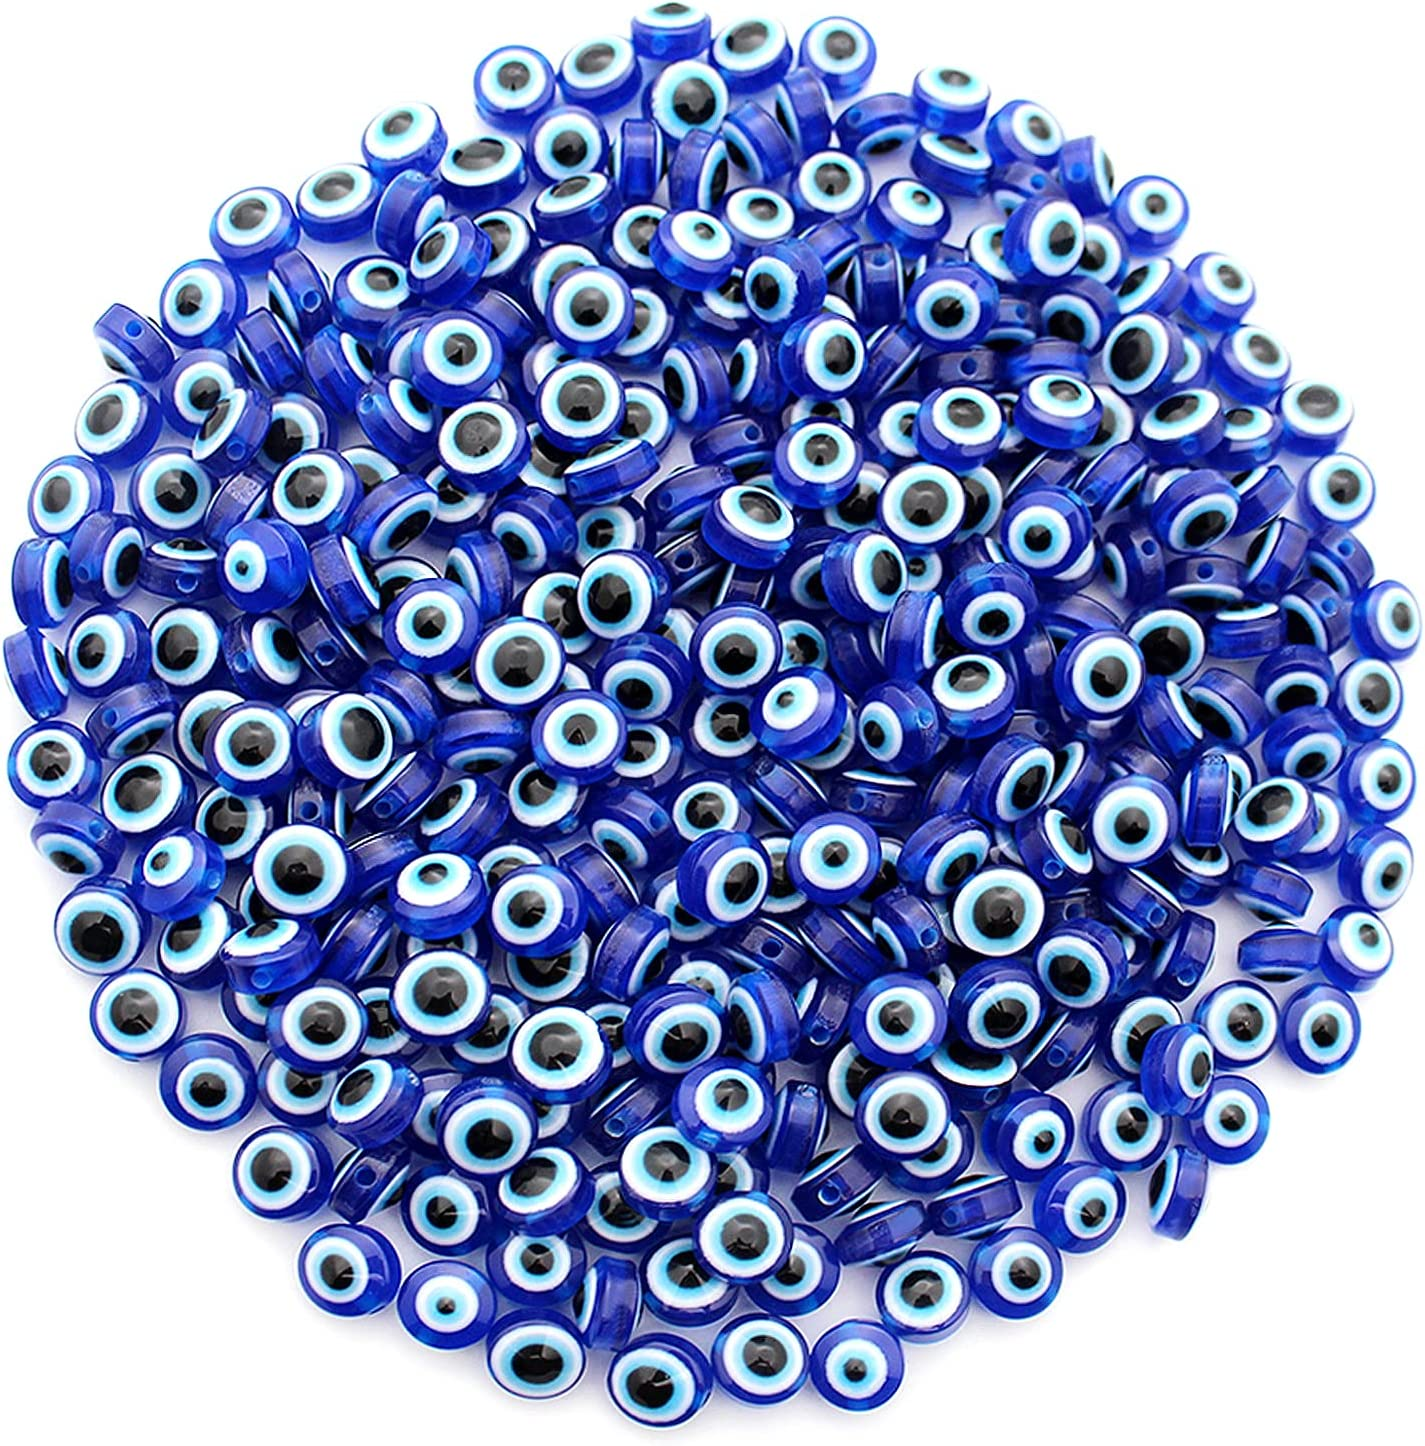 Anvin 300Pcs Blue Evil Eye Beads for Bracelets Necklace Jewelry Making, Evil Eye Protection Charms Bulk DIY Craft Handmade Evil Eye Decoration for Home Wall Ornament Resin Round (300Pcs 8mm)